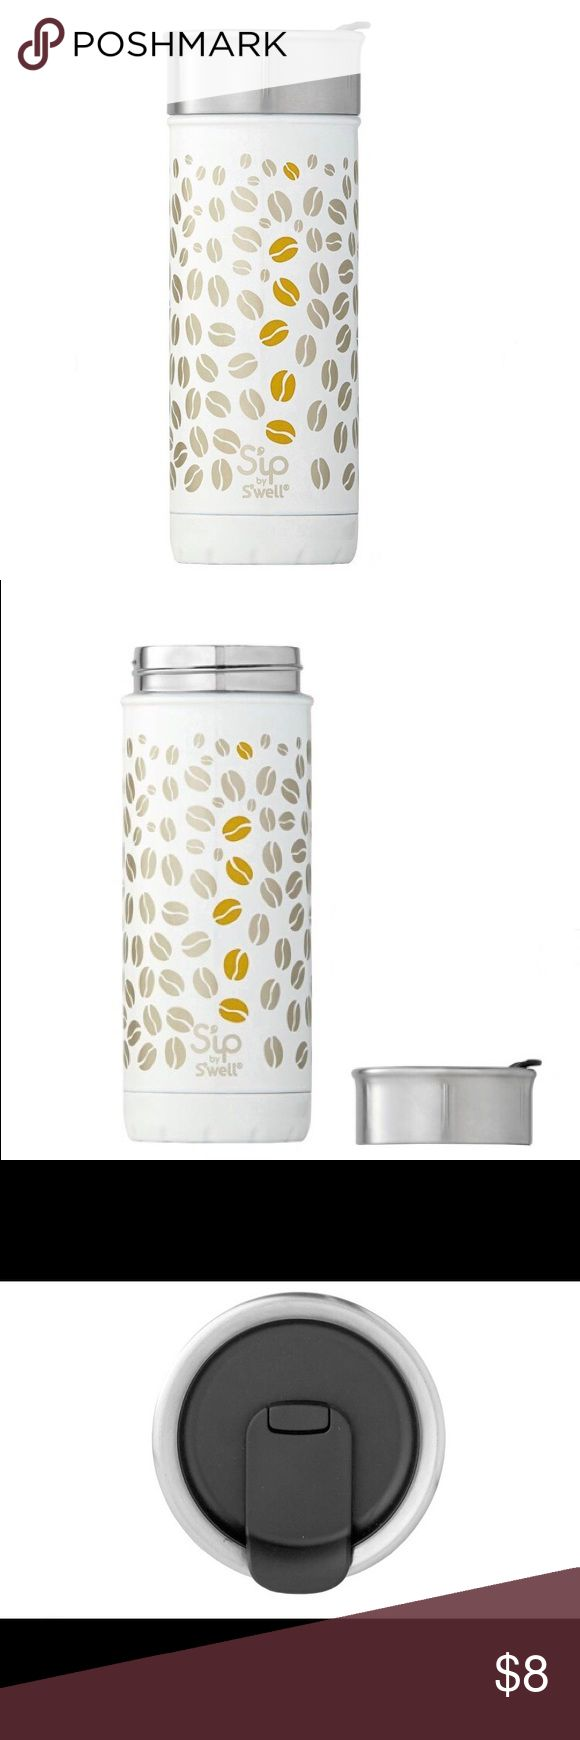 ☕️ Sip by S'Well Heated Insulated Travel Mug NEW Brand new! Sip by S'Well travel mug - keeps drinks insulated for hours! s'well Other